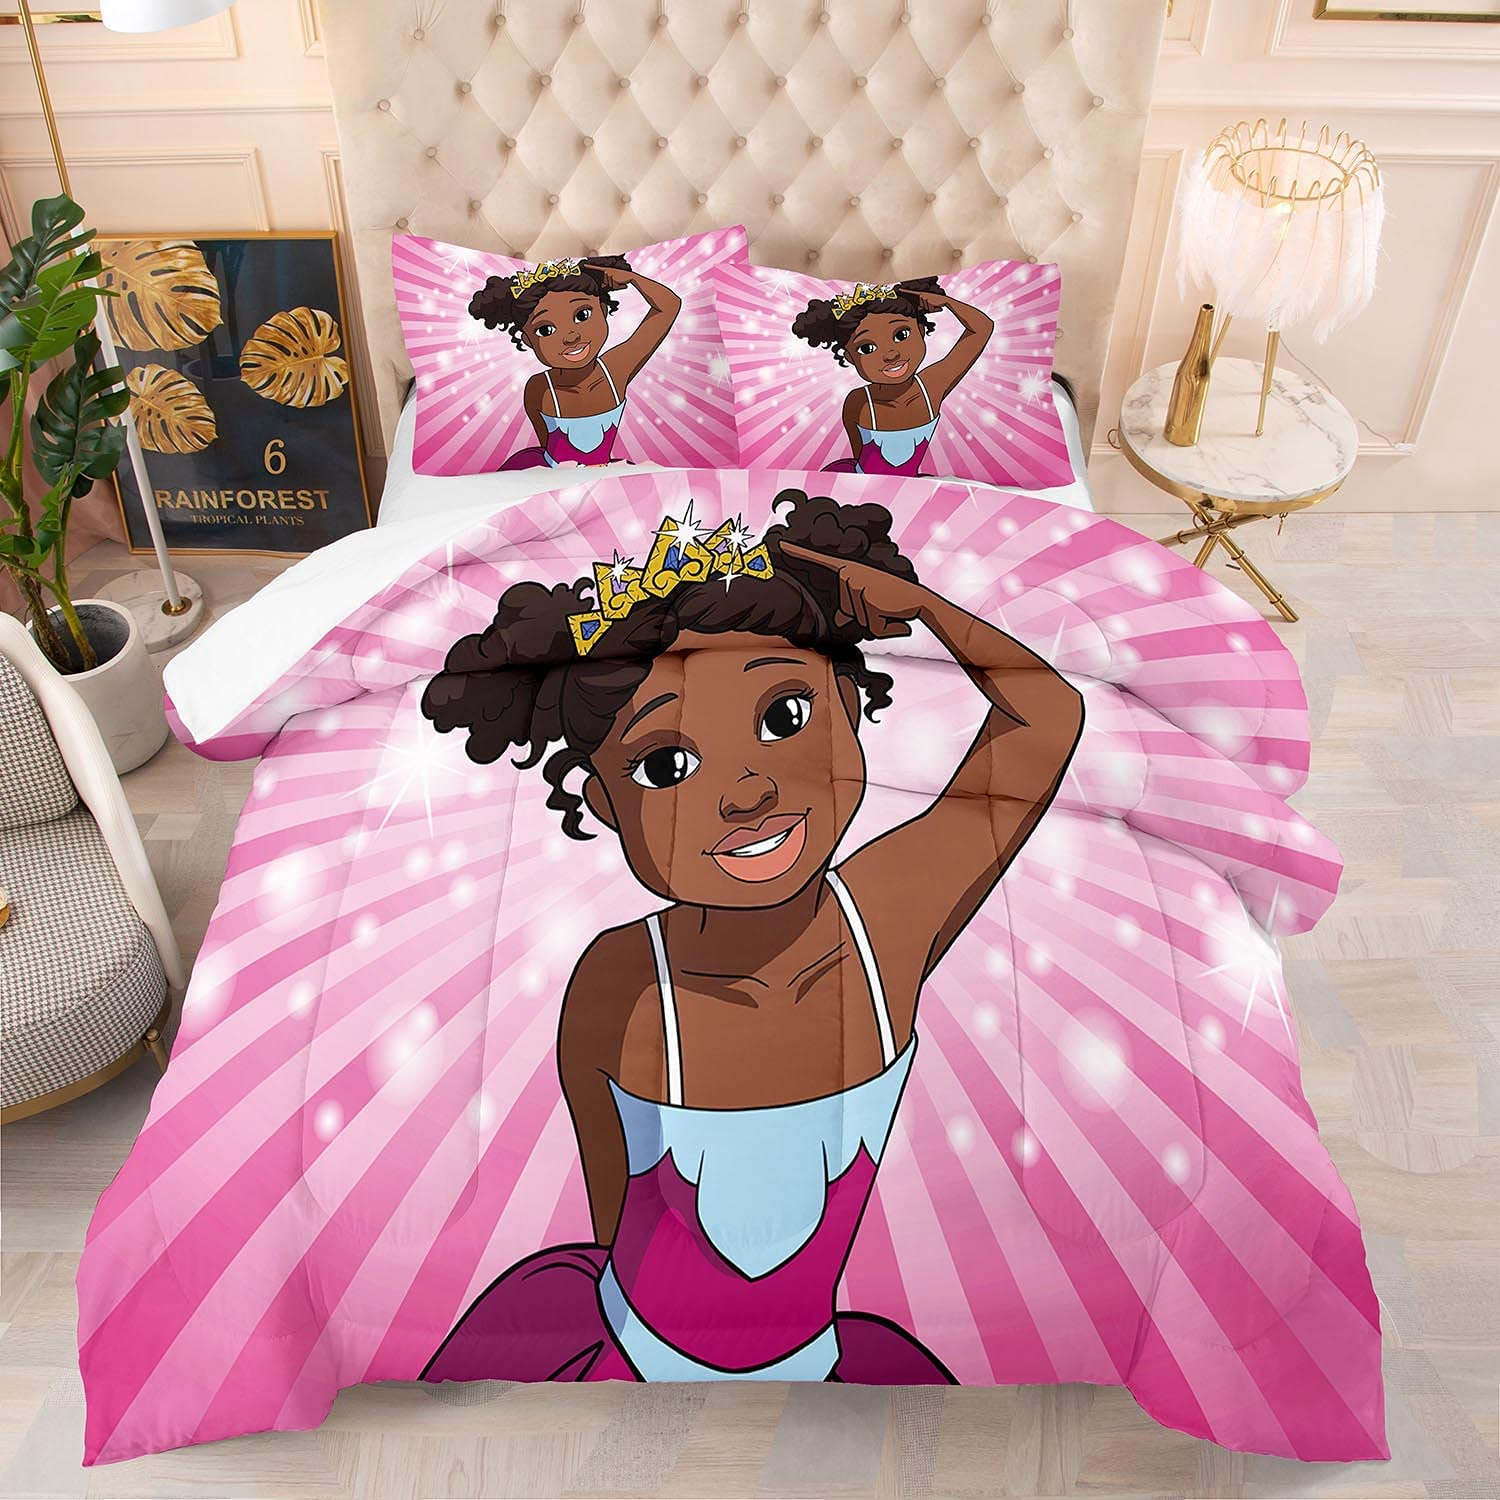 Cute Black Girl Comforter Set Twin Size African American Kids Bedding Quilt Sets Pink for Girls Birthday Gift Ultra Soft ,1 Comfoter +1 Pillowcase